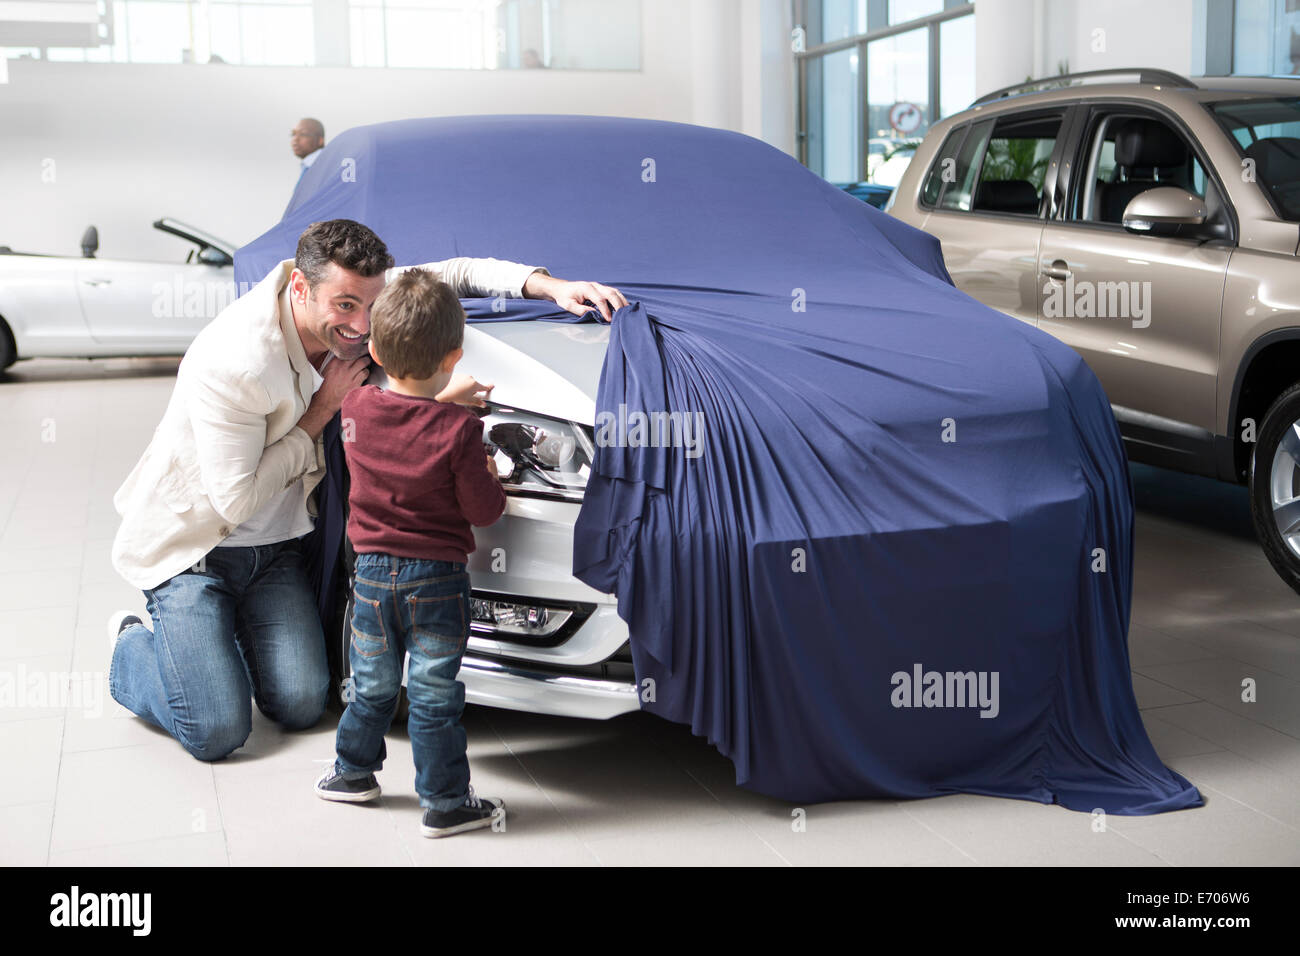 Mid adult man uncovering new car for son in car dealership - Stock Image